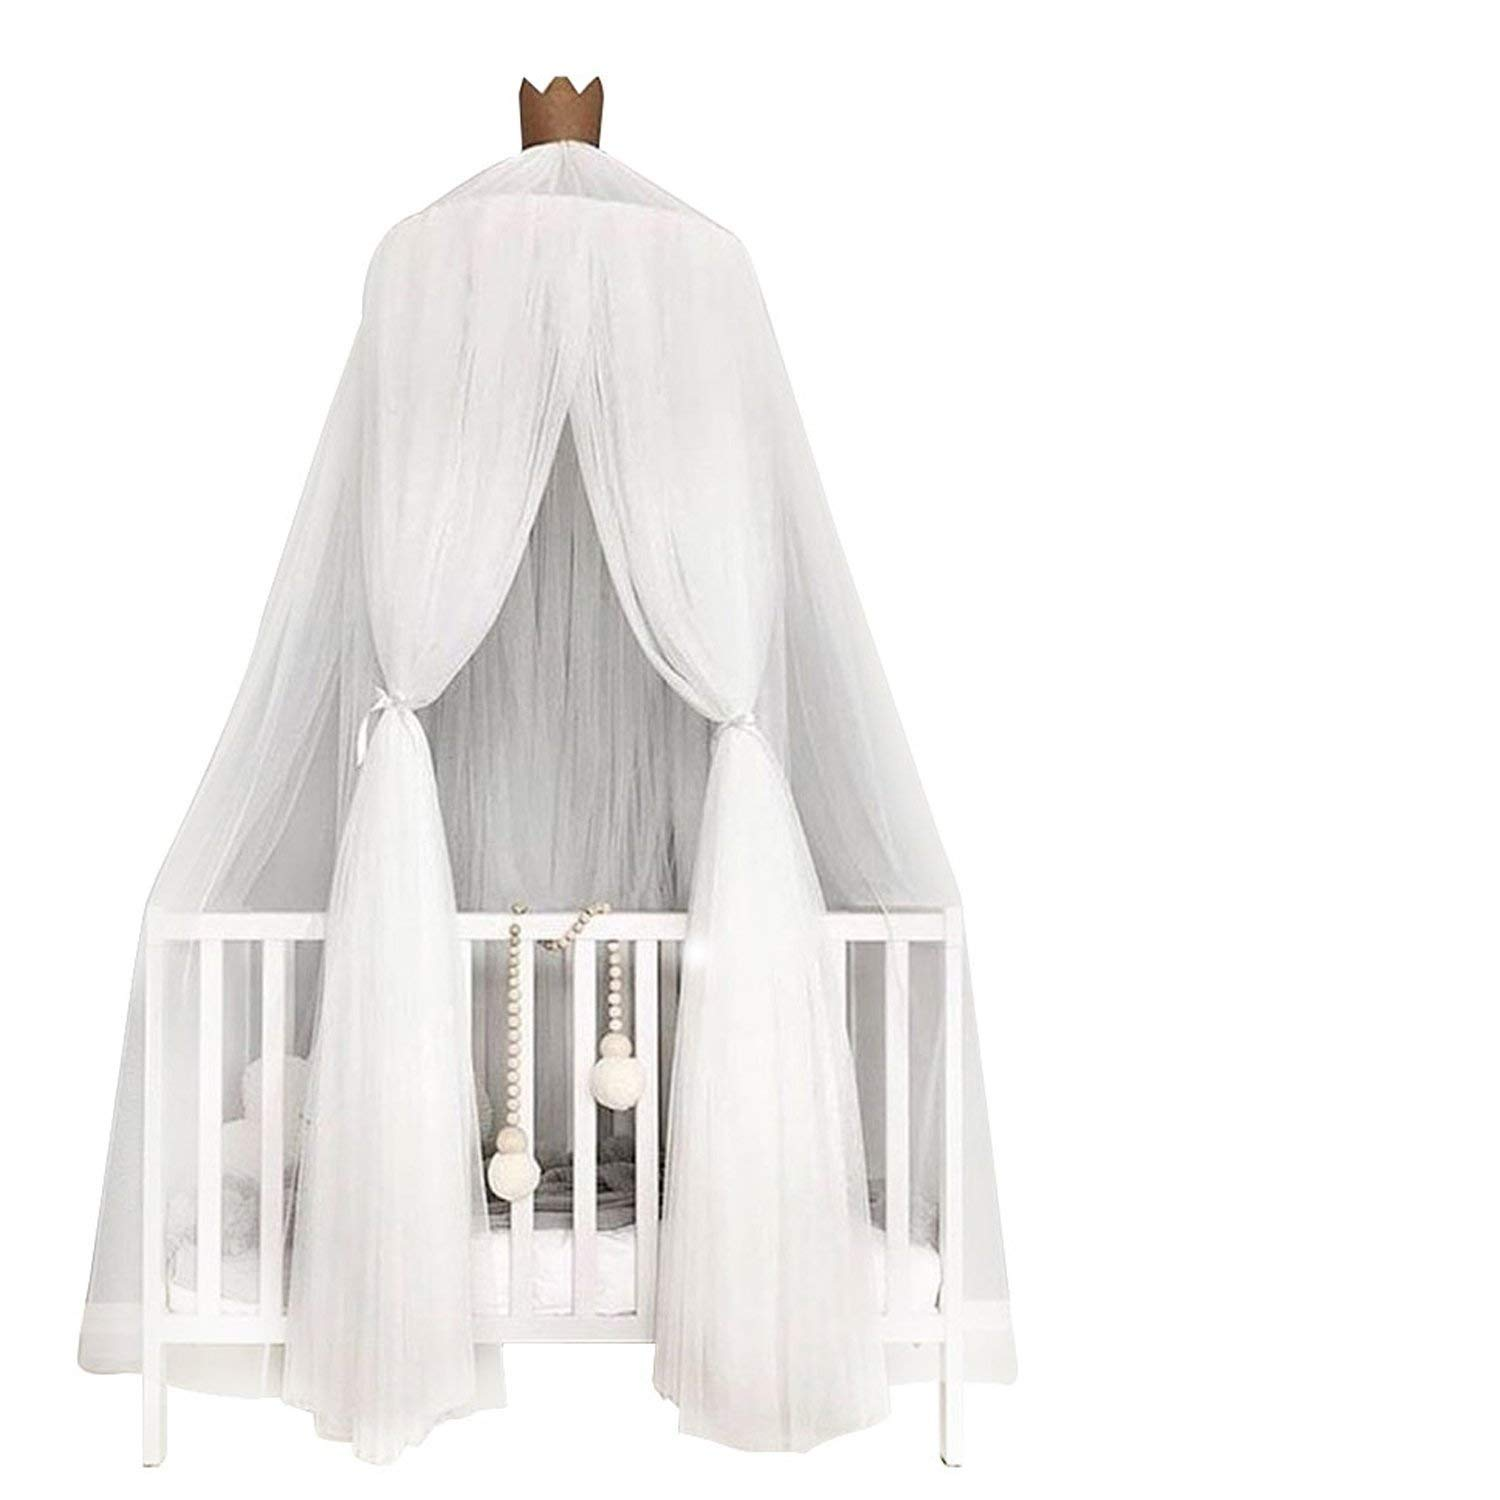 Welcome to Joyful Home Kids Mosquito Net Bed Canopy Round Lace Dome Princess Play Tent Bedding for Baby Kids Children's Room 240cm (White)